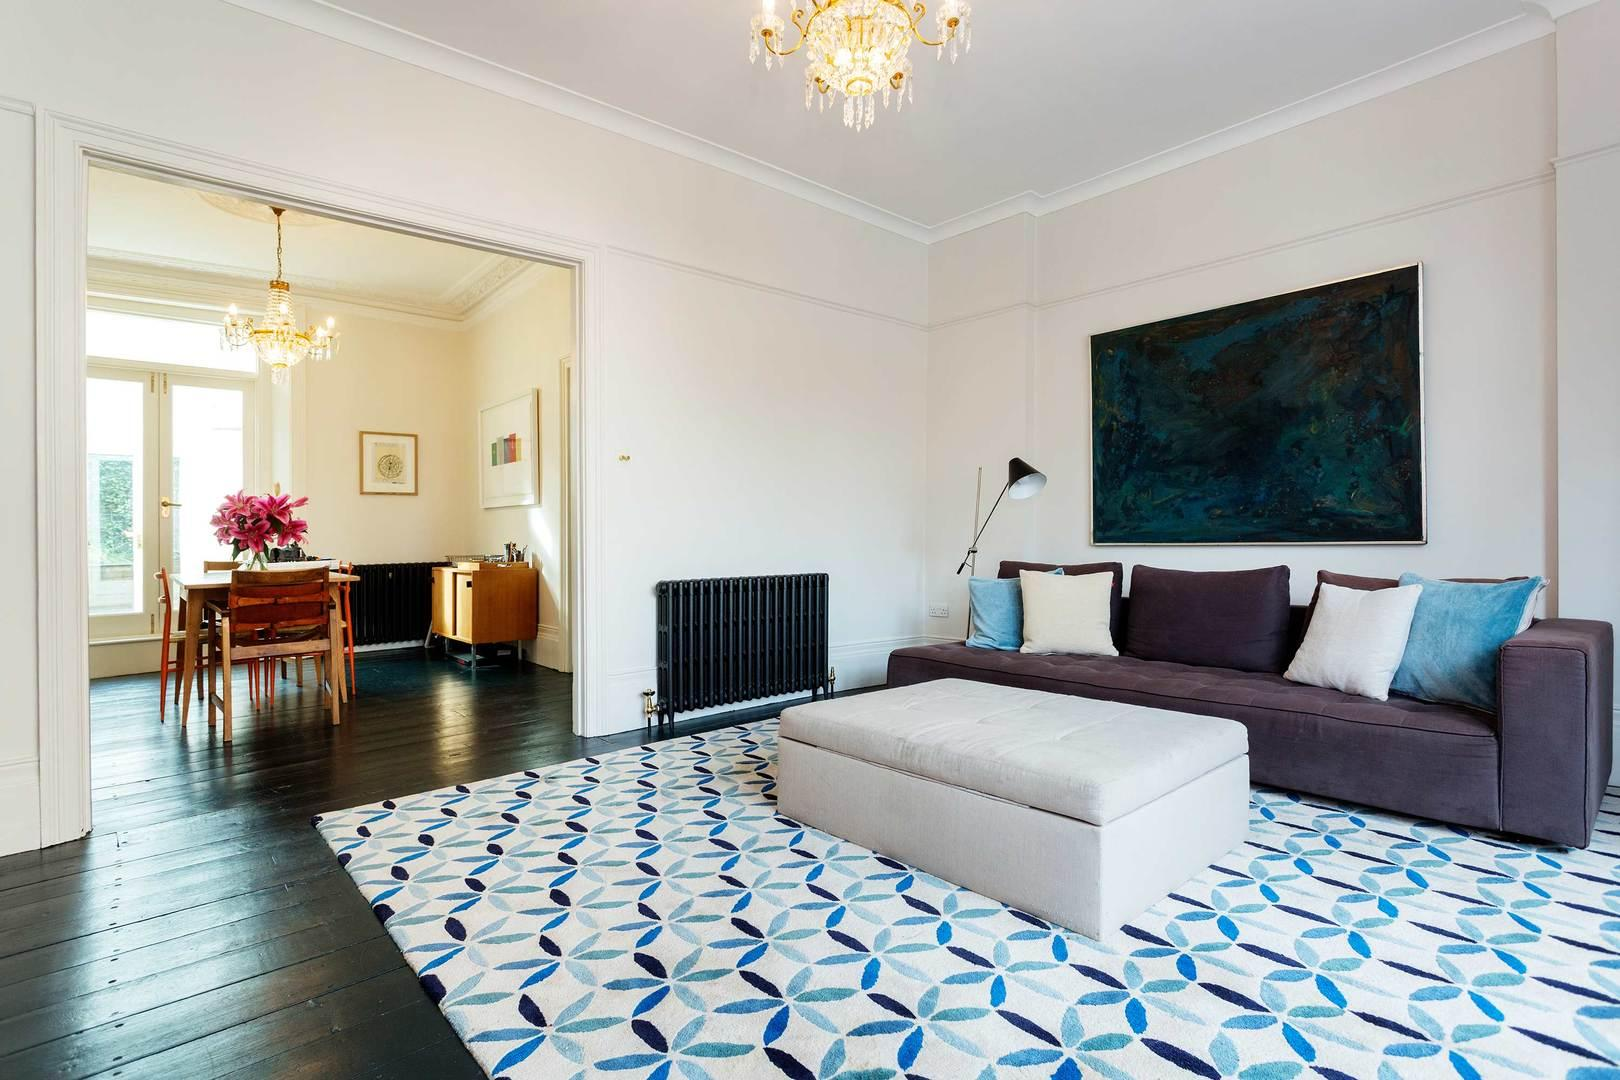 Property Image 2 - Fashionable Hammersmith House with Spacious Lounge